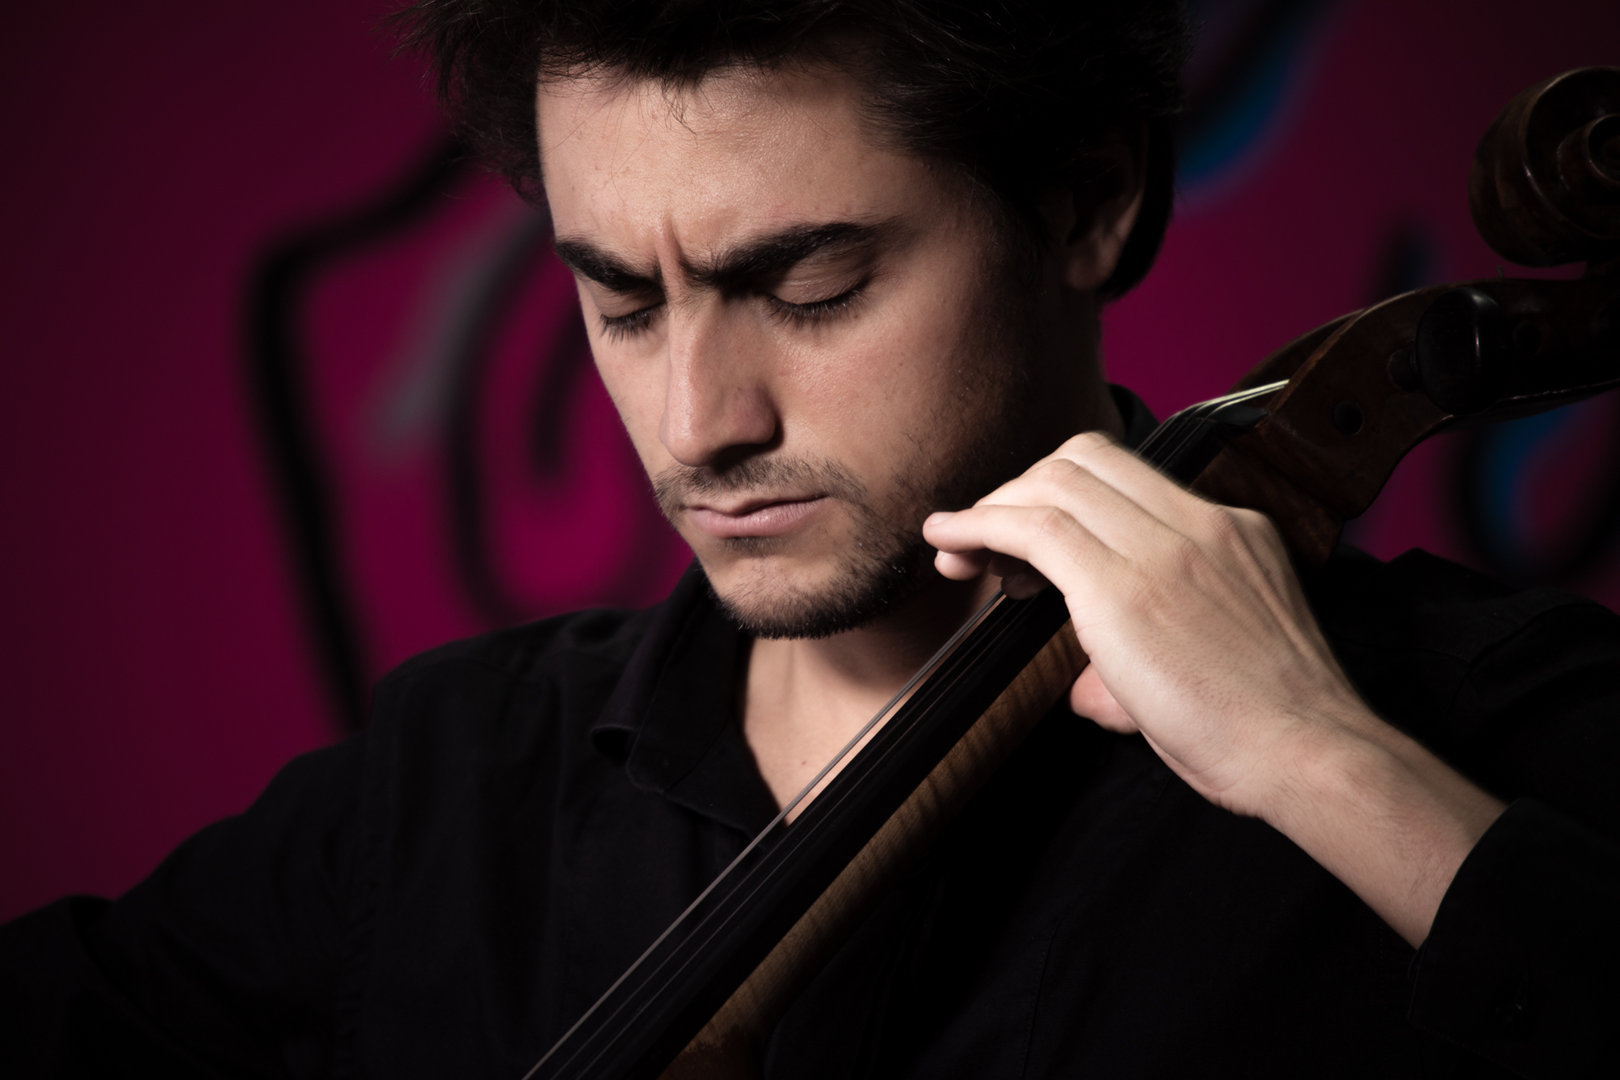 constantin macherel portait with cello 4